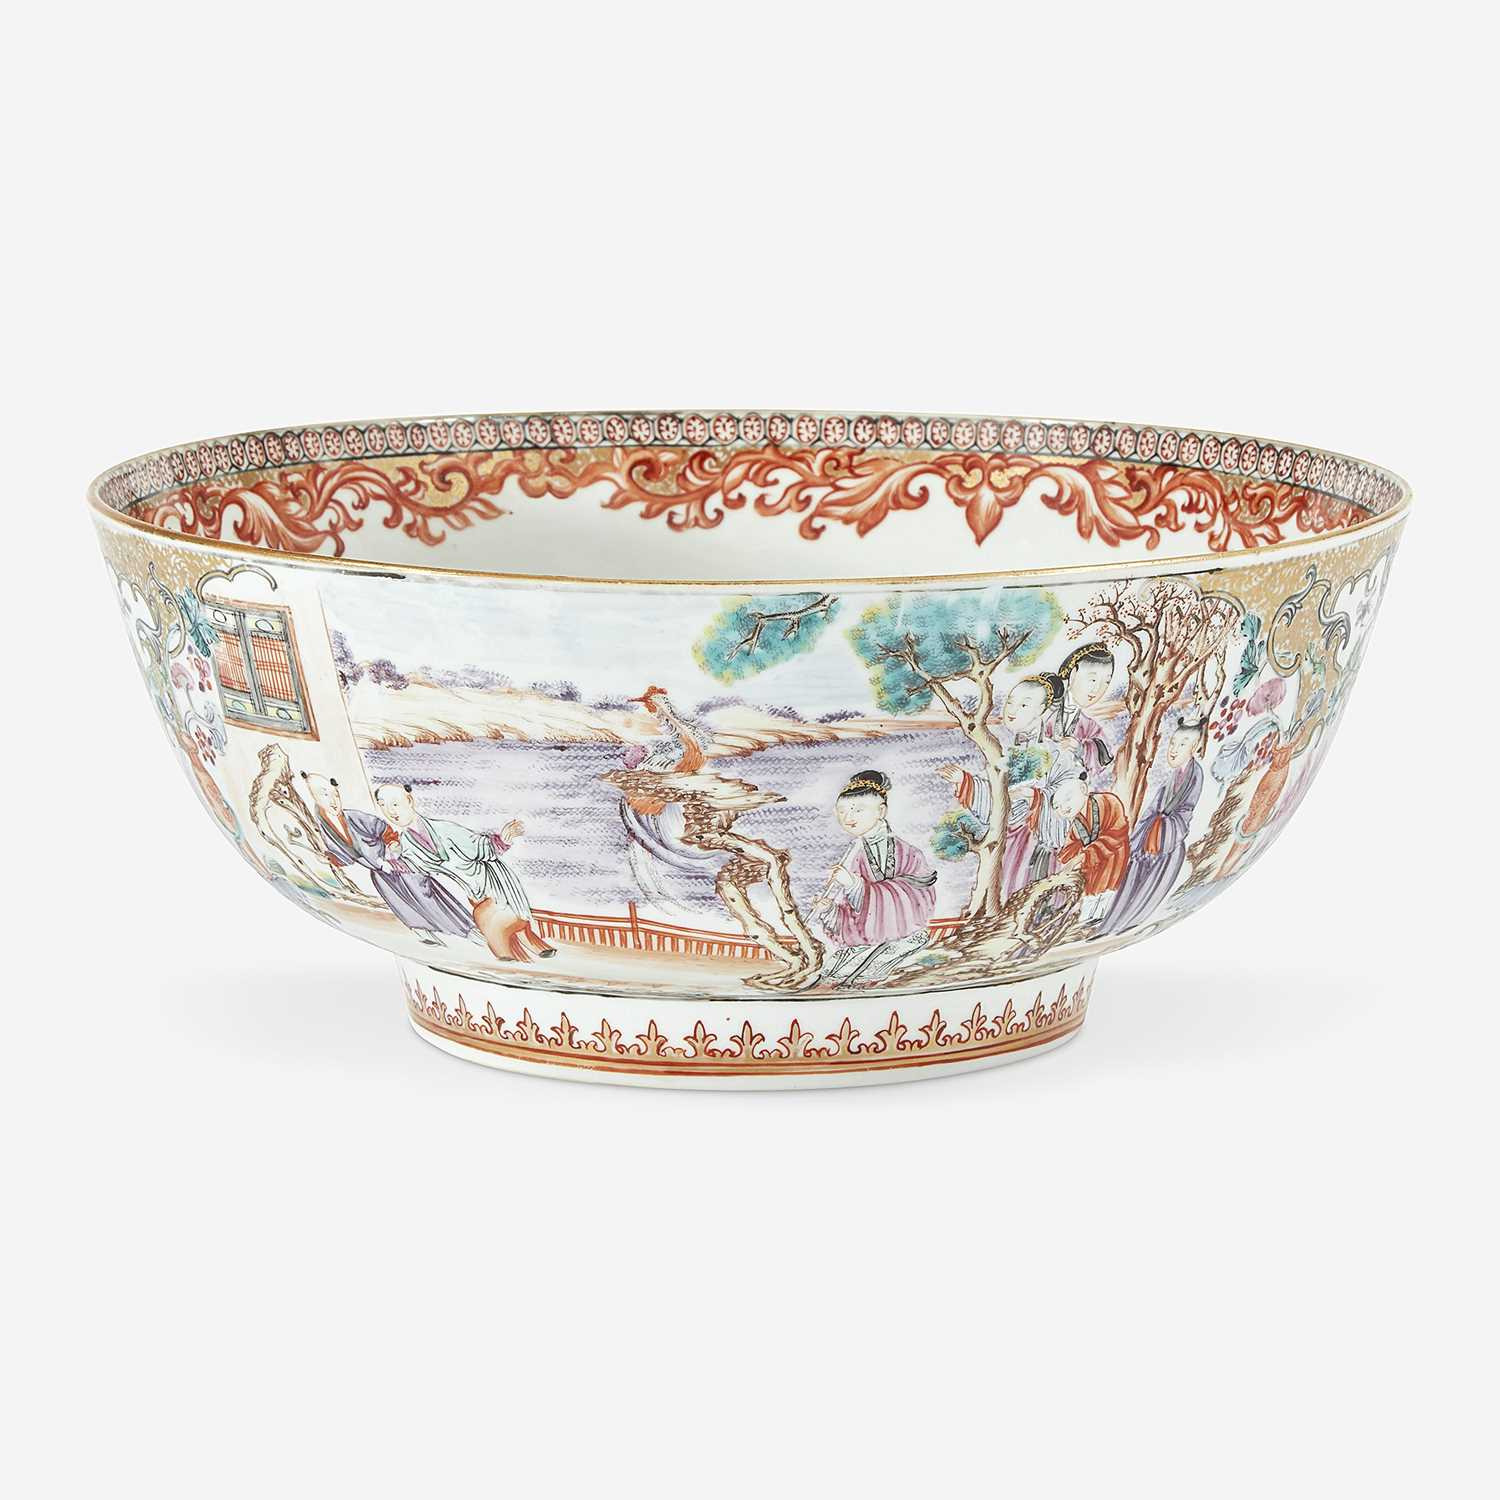 Lot 66 - A Chinese export famille rose-decorated porcelain figural punchbowl